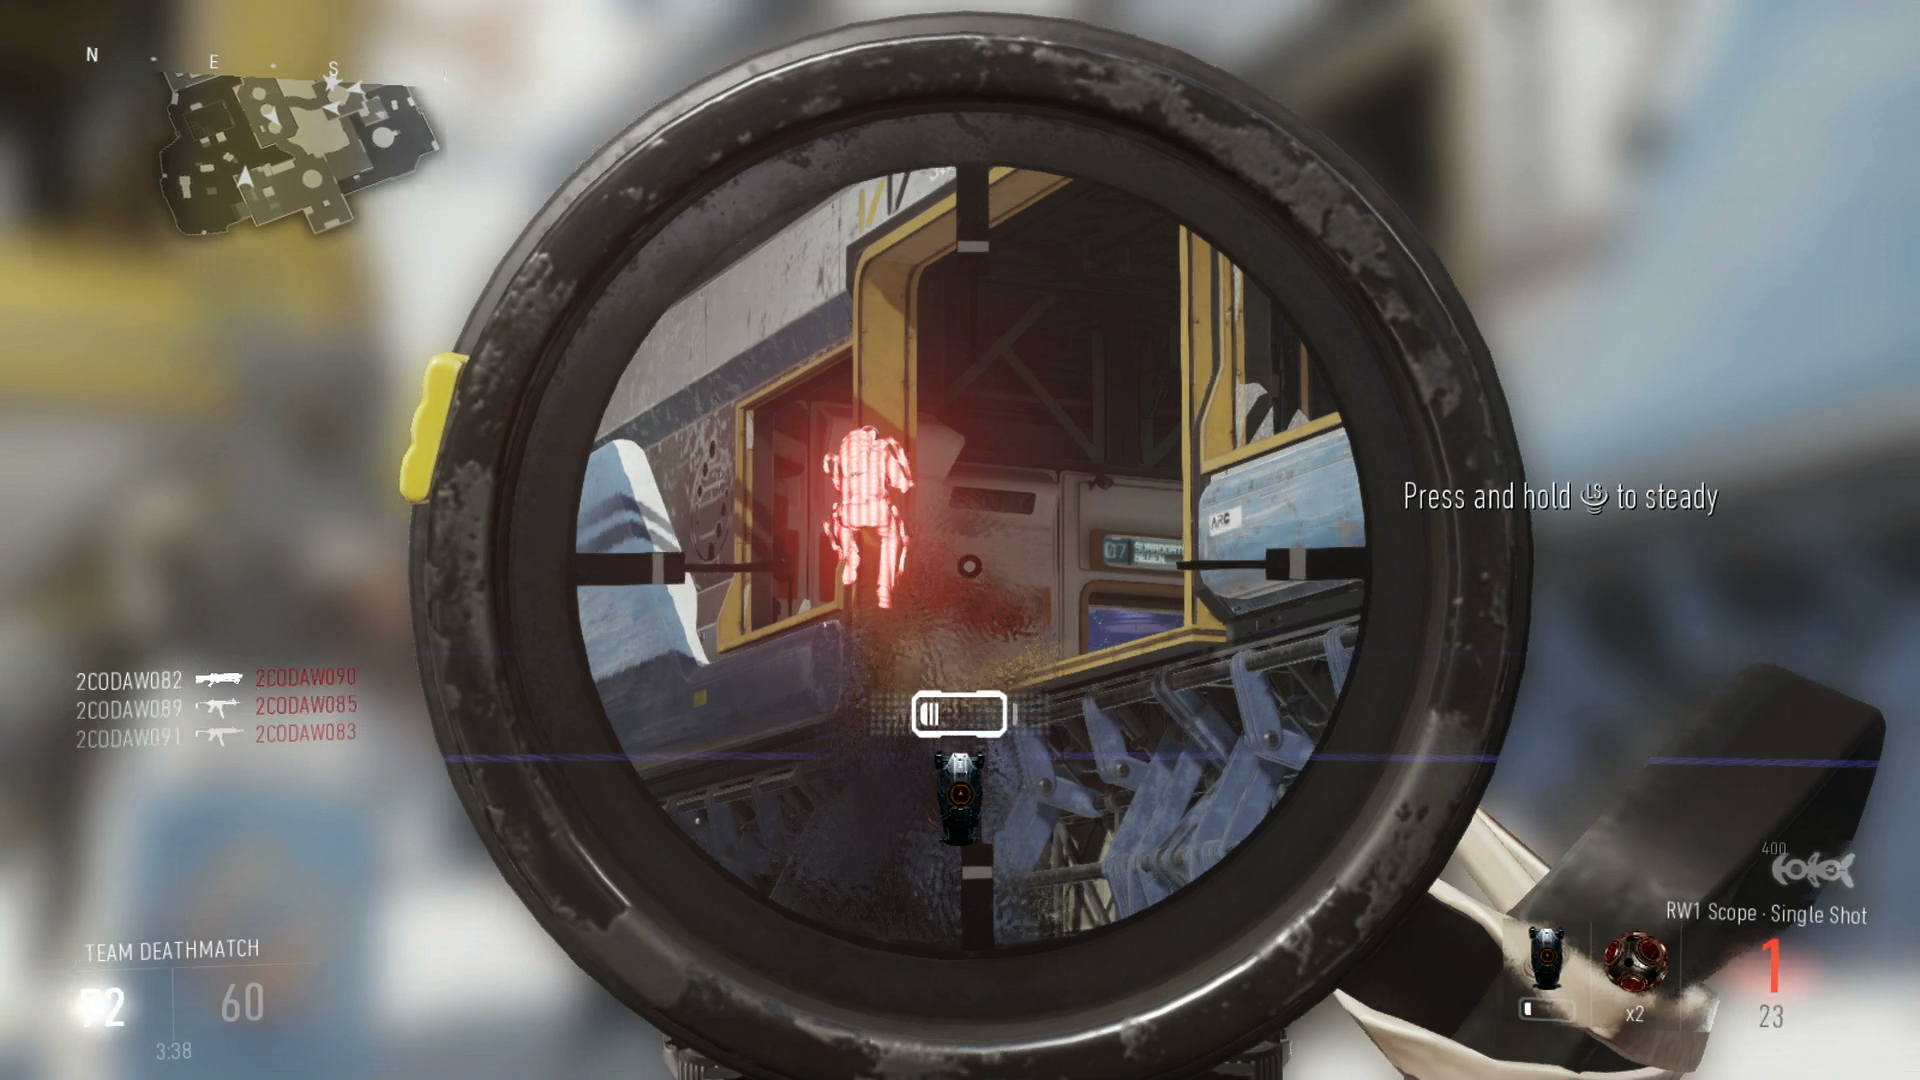 Call of duty advanced warfare watch exclusive gameplay live from